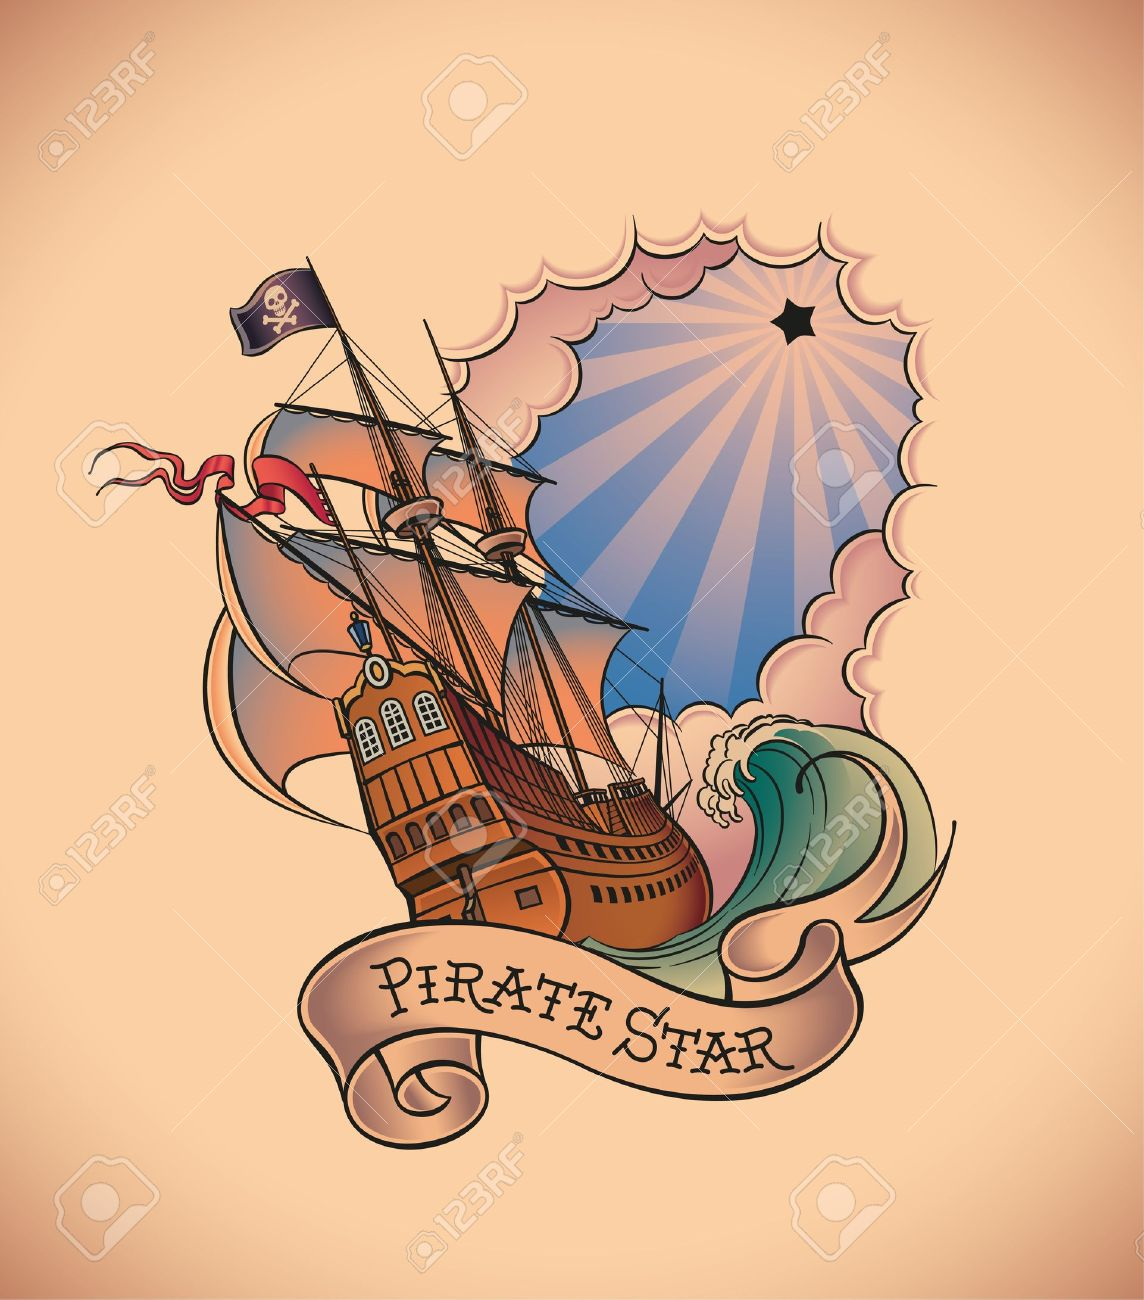 Old School Styled Tattoo Of A Pirate Ship On The Background Of Royalty Free Cliparts Vectors And Stock Illustration Image 21963732